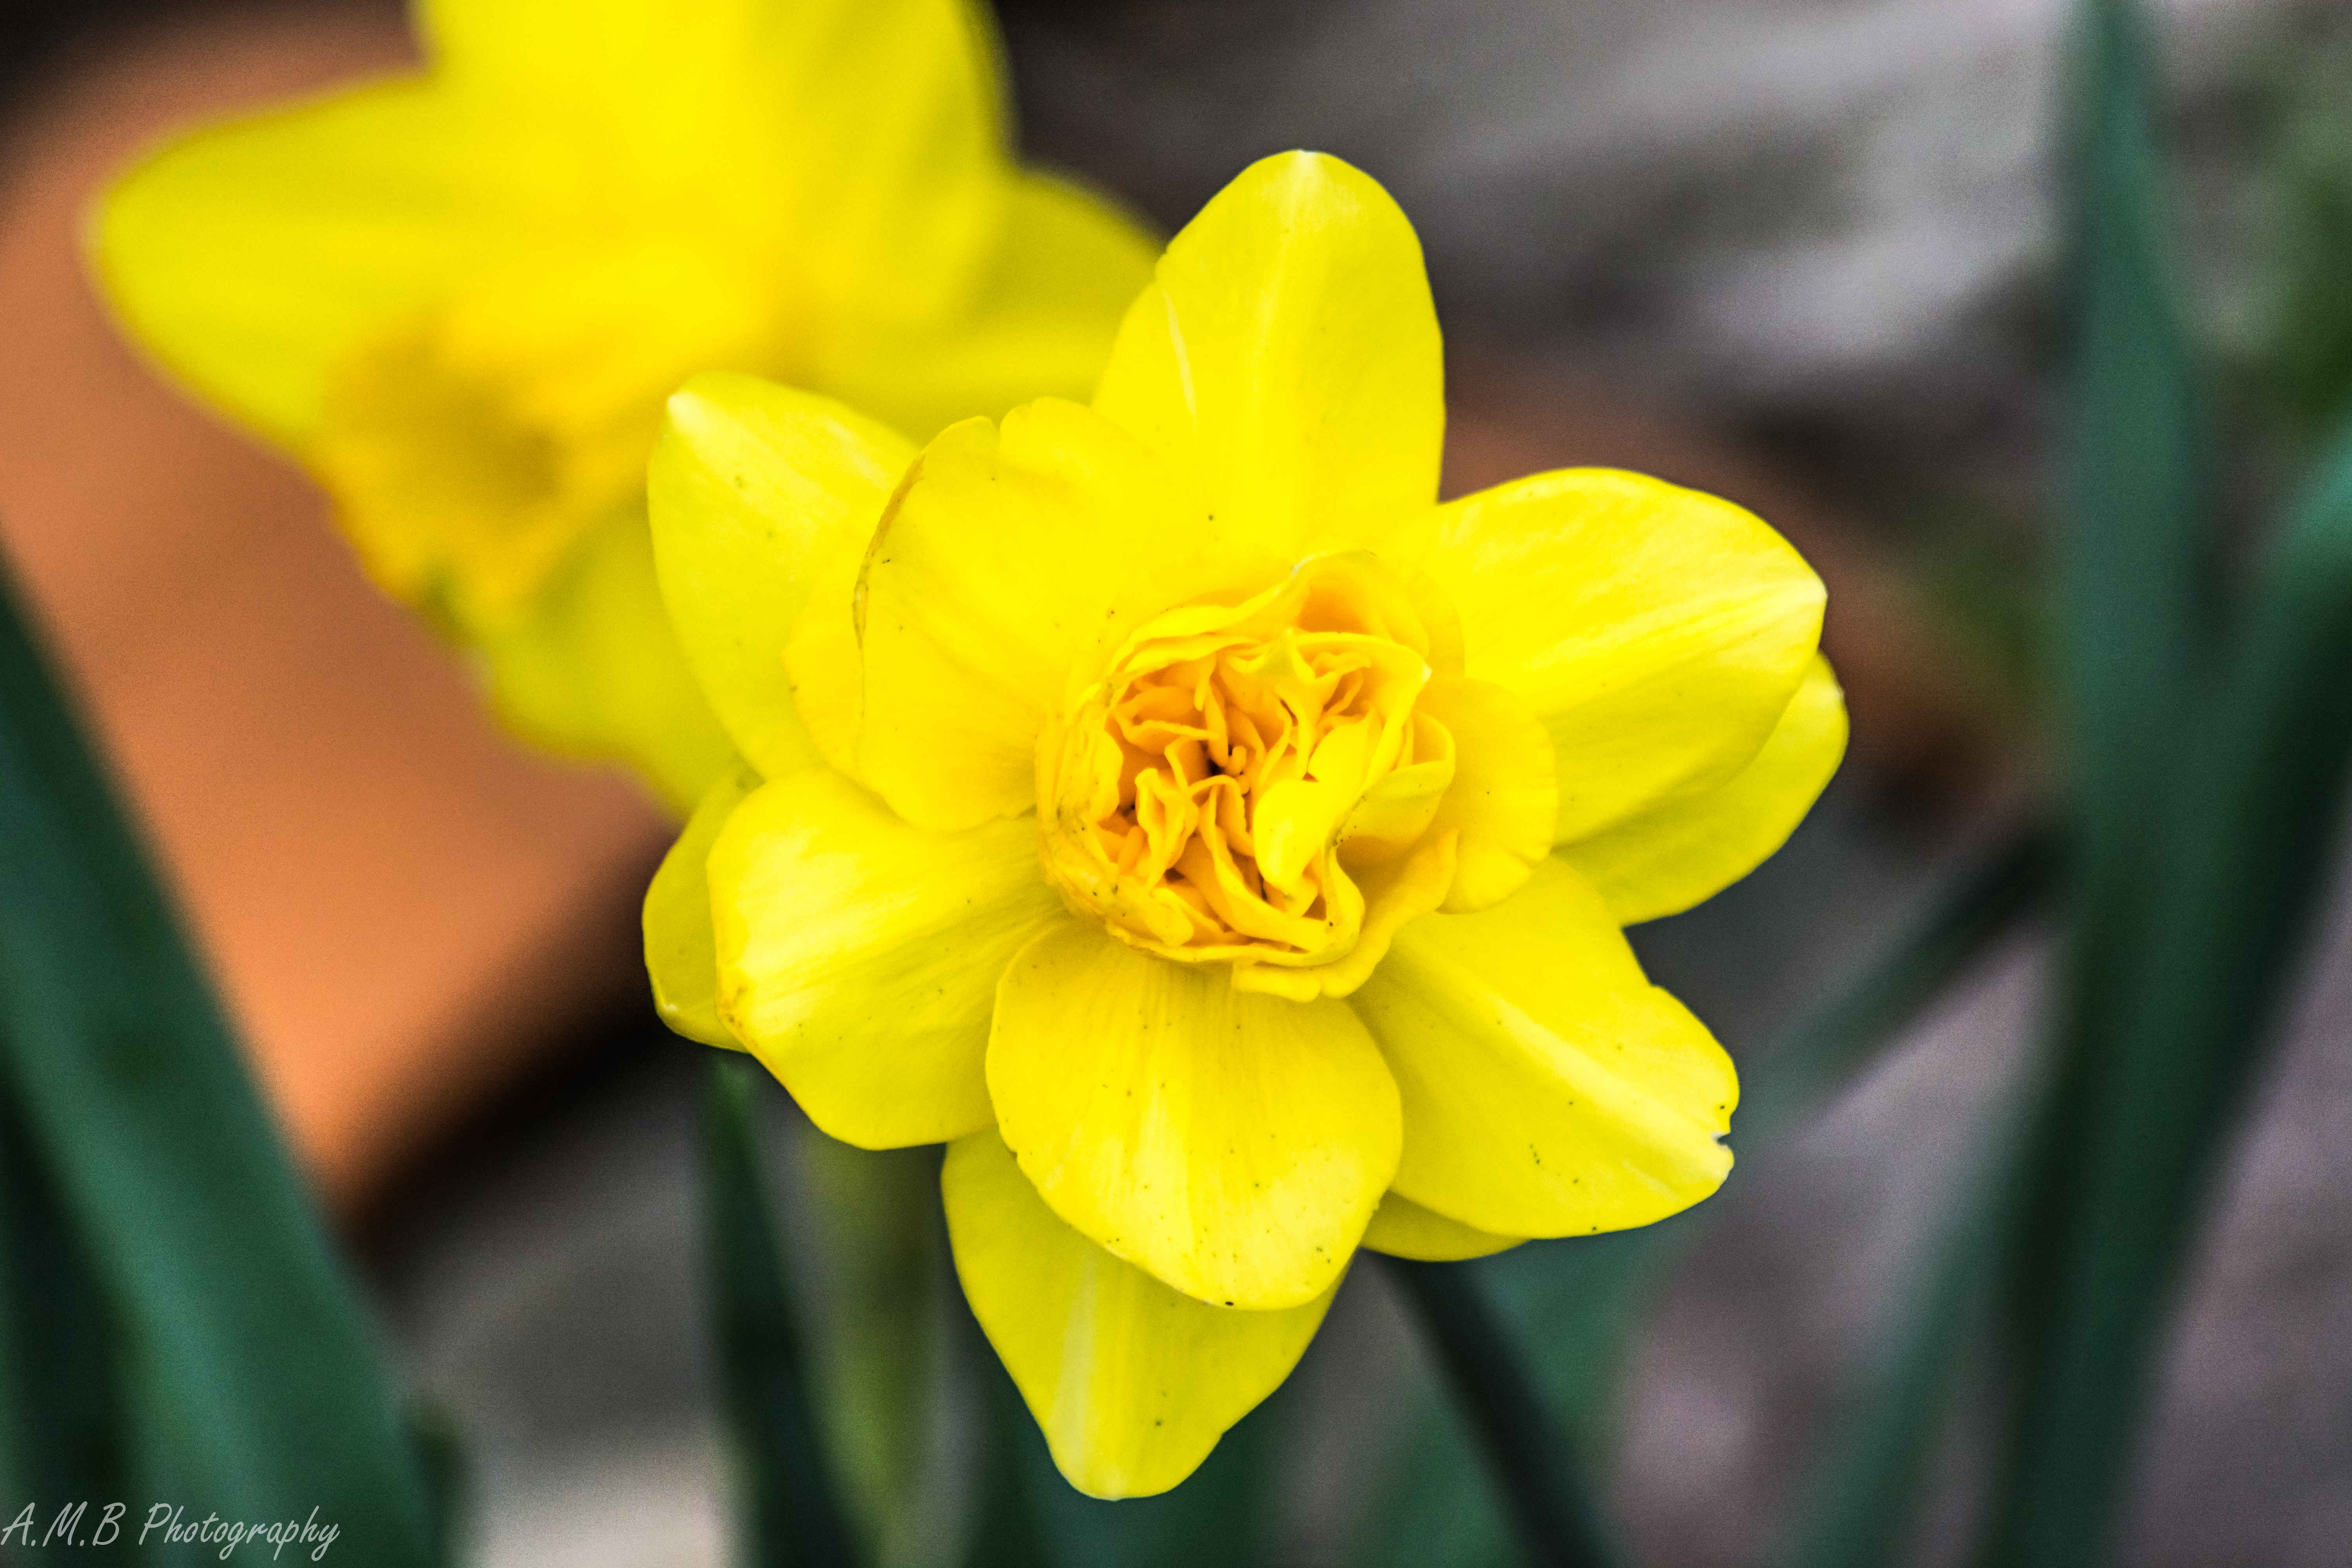 Double Blooming Daffodil IV